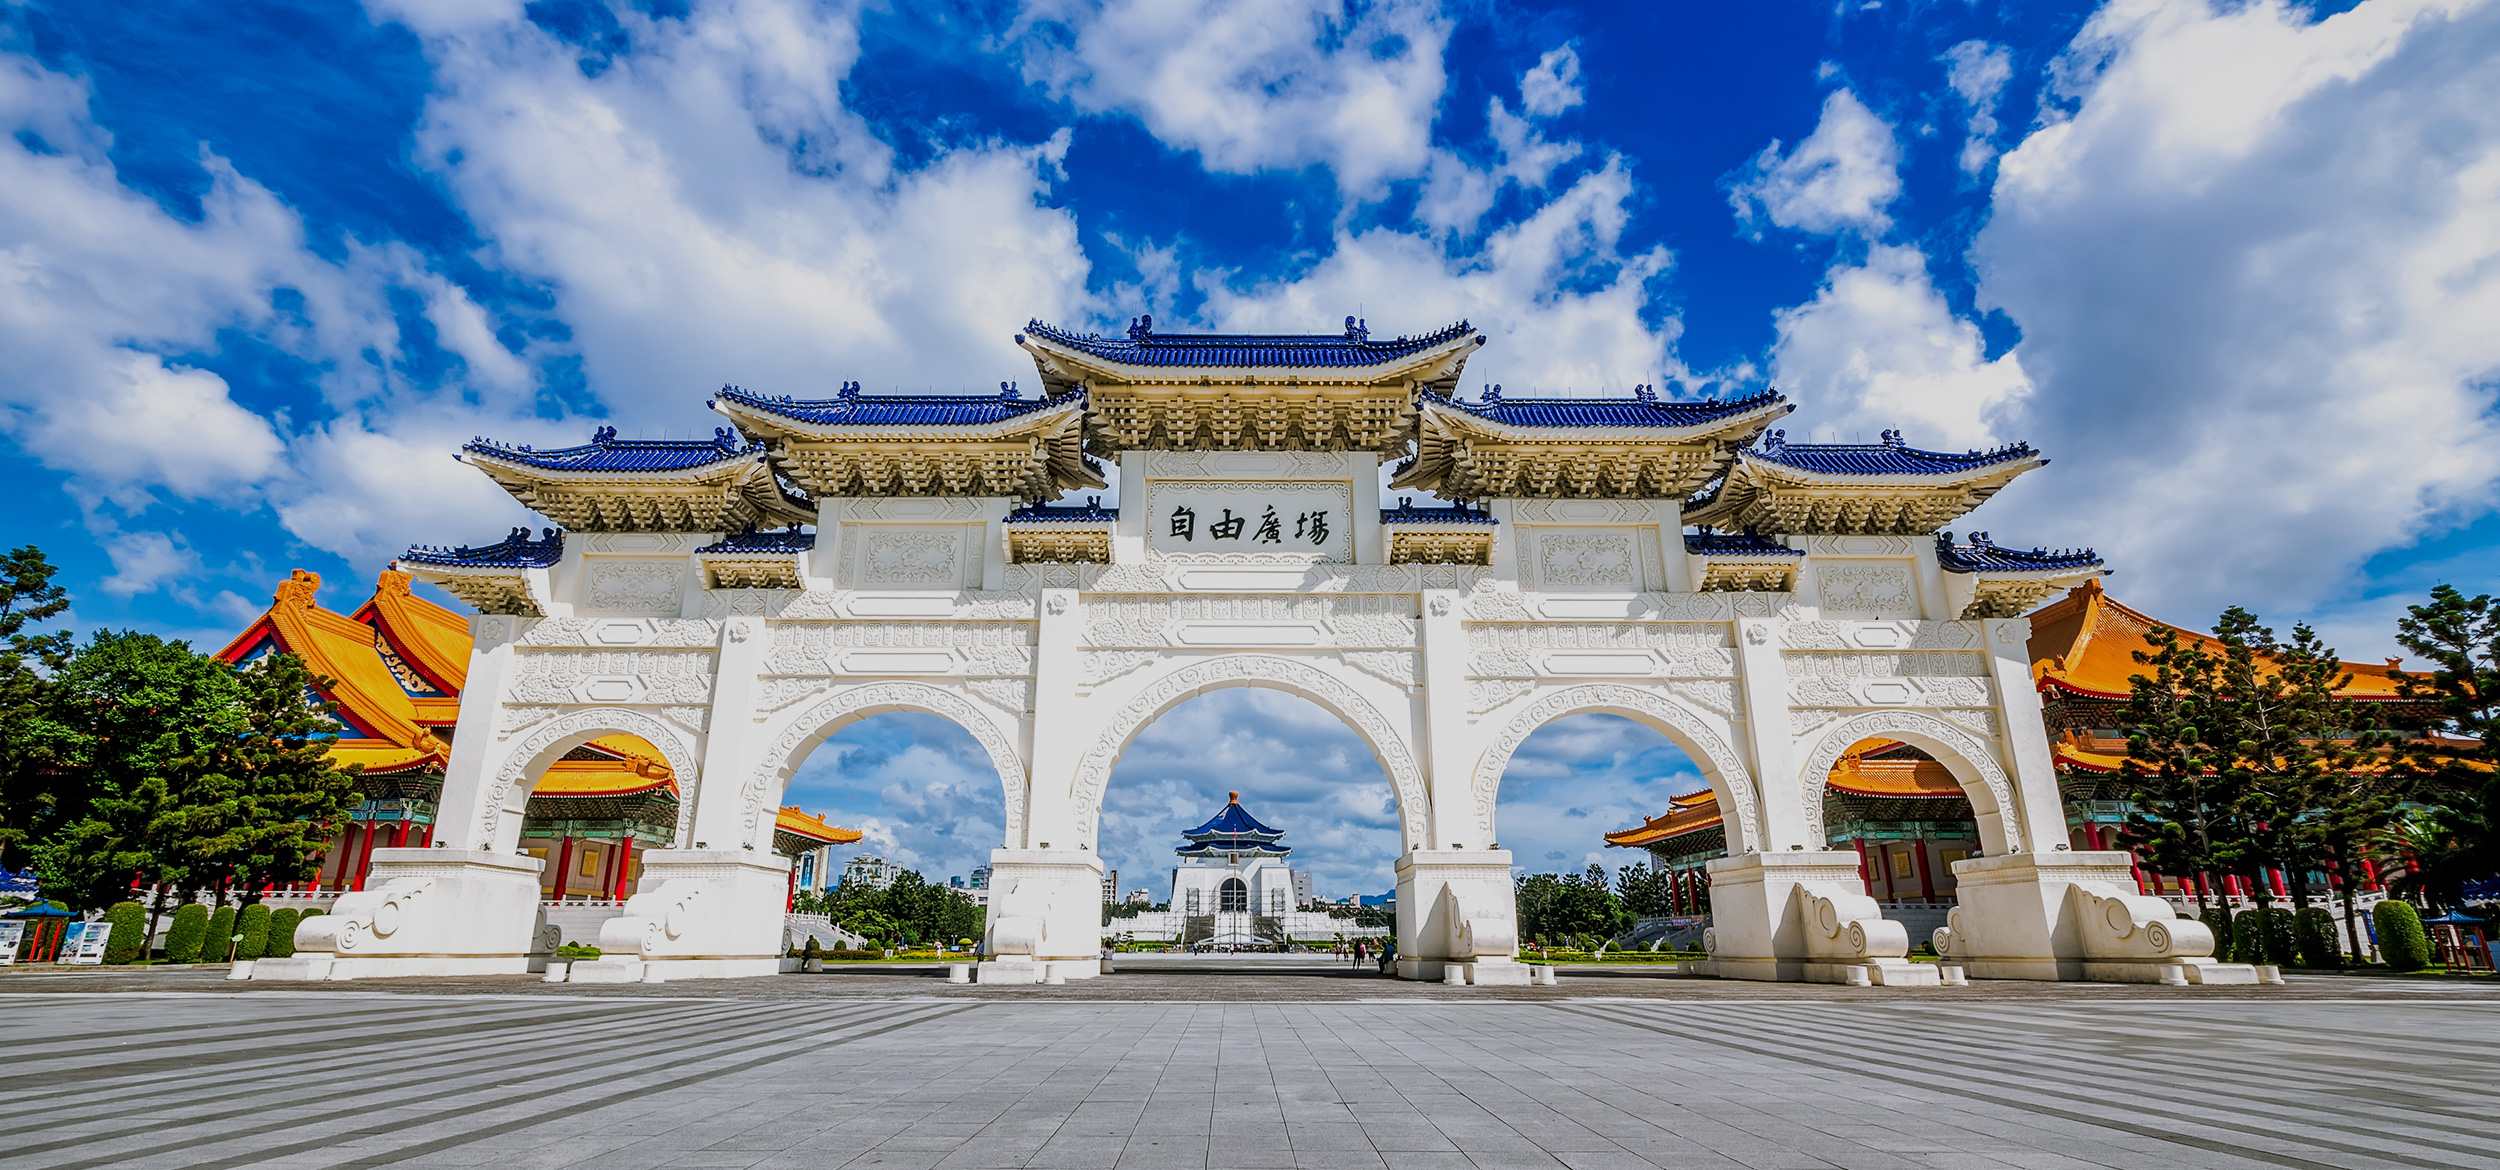 A view of Chiang Kai-shek Memorial Hall at sunset in Taipei, Taiwan.